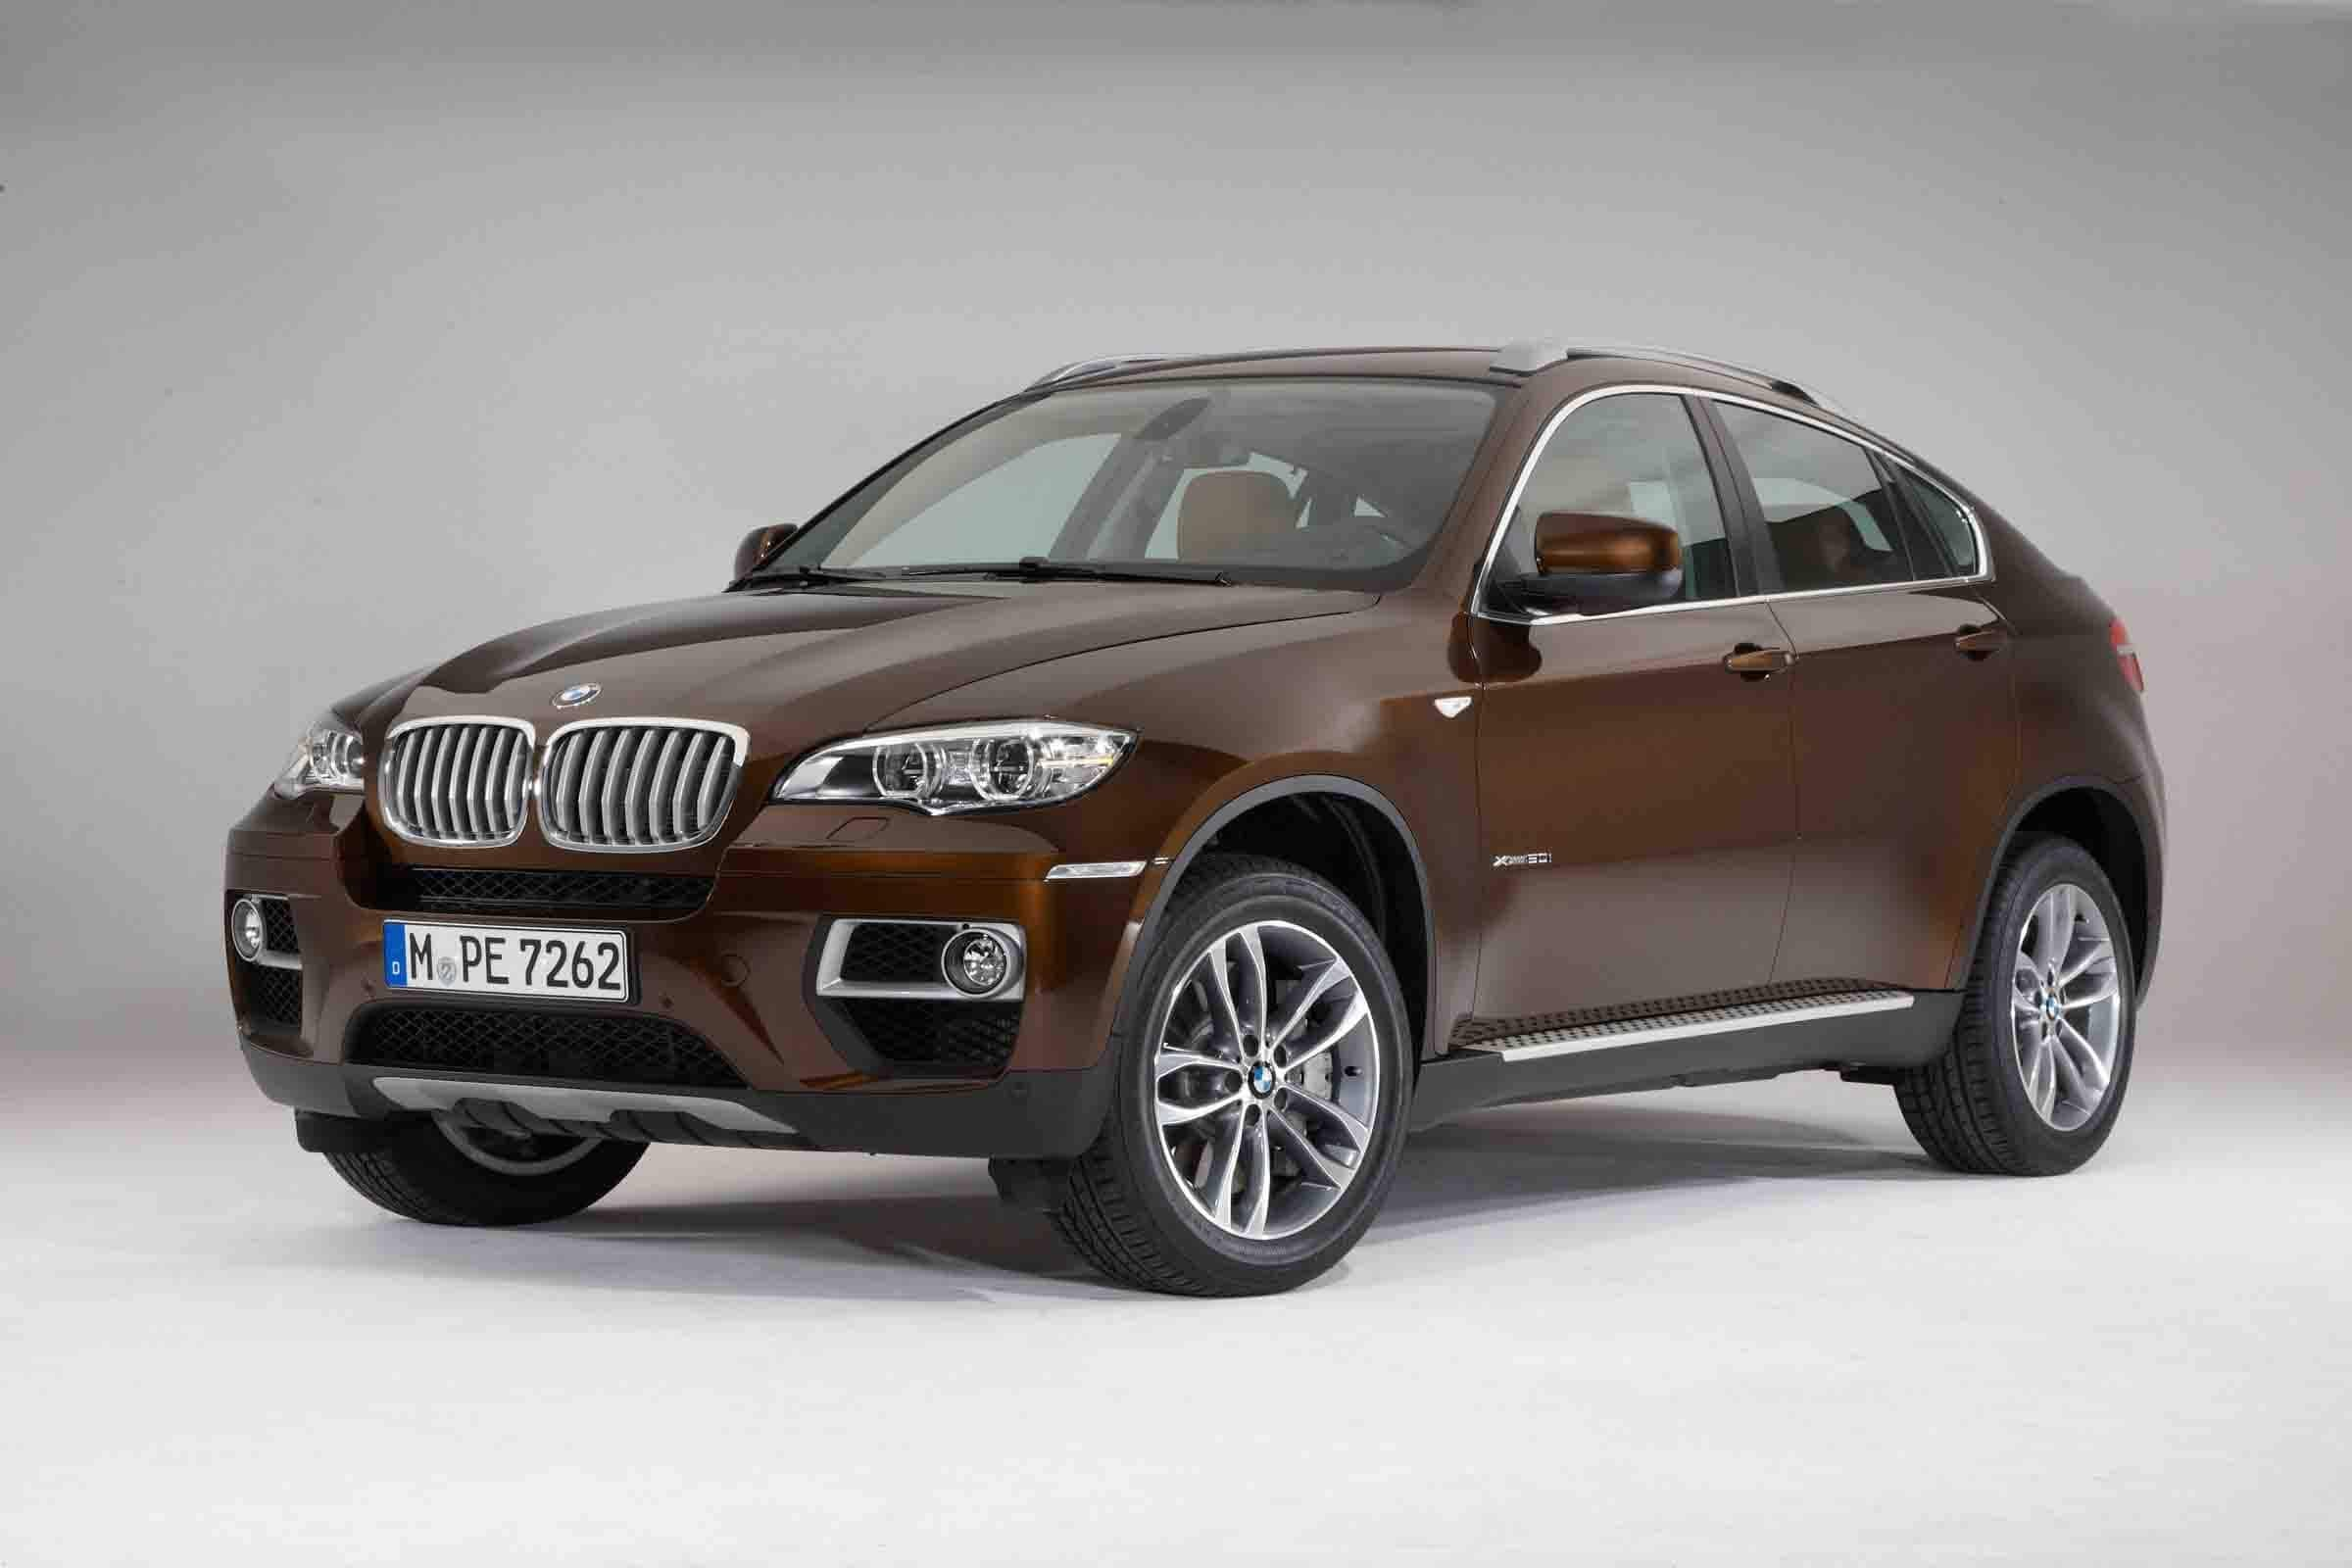 Latest Bmw Cars Prices Reviews New Bmw Cars In India Specs News Free Download